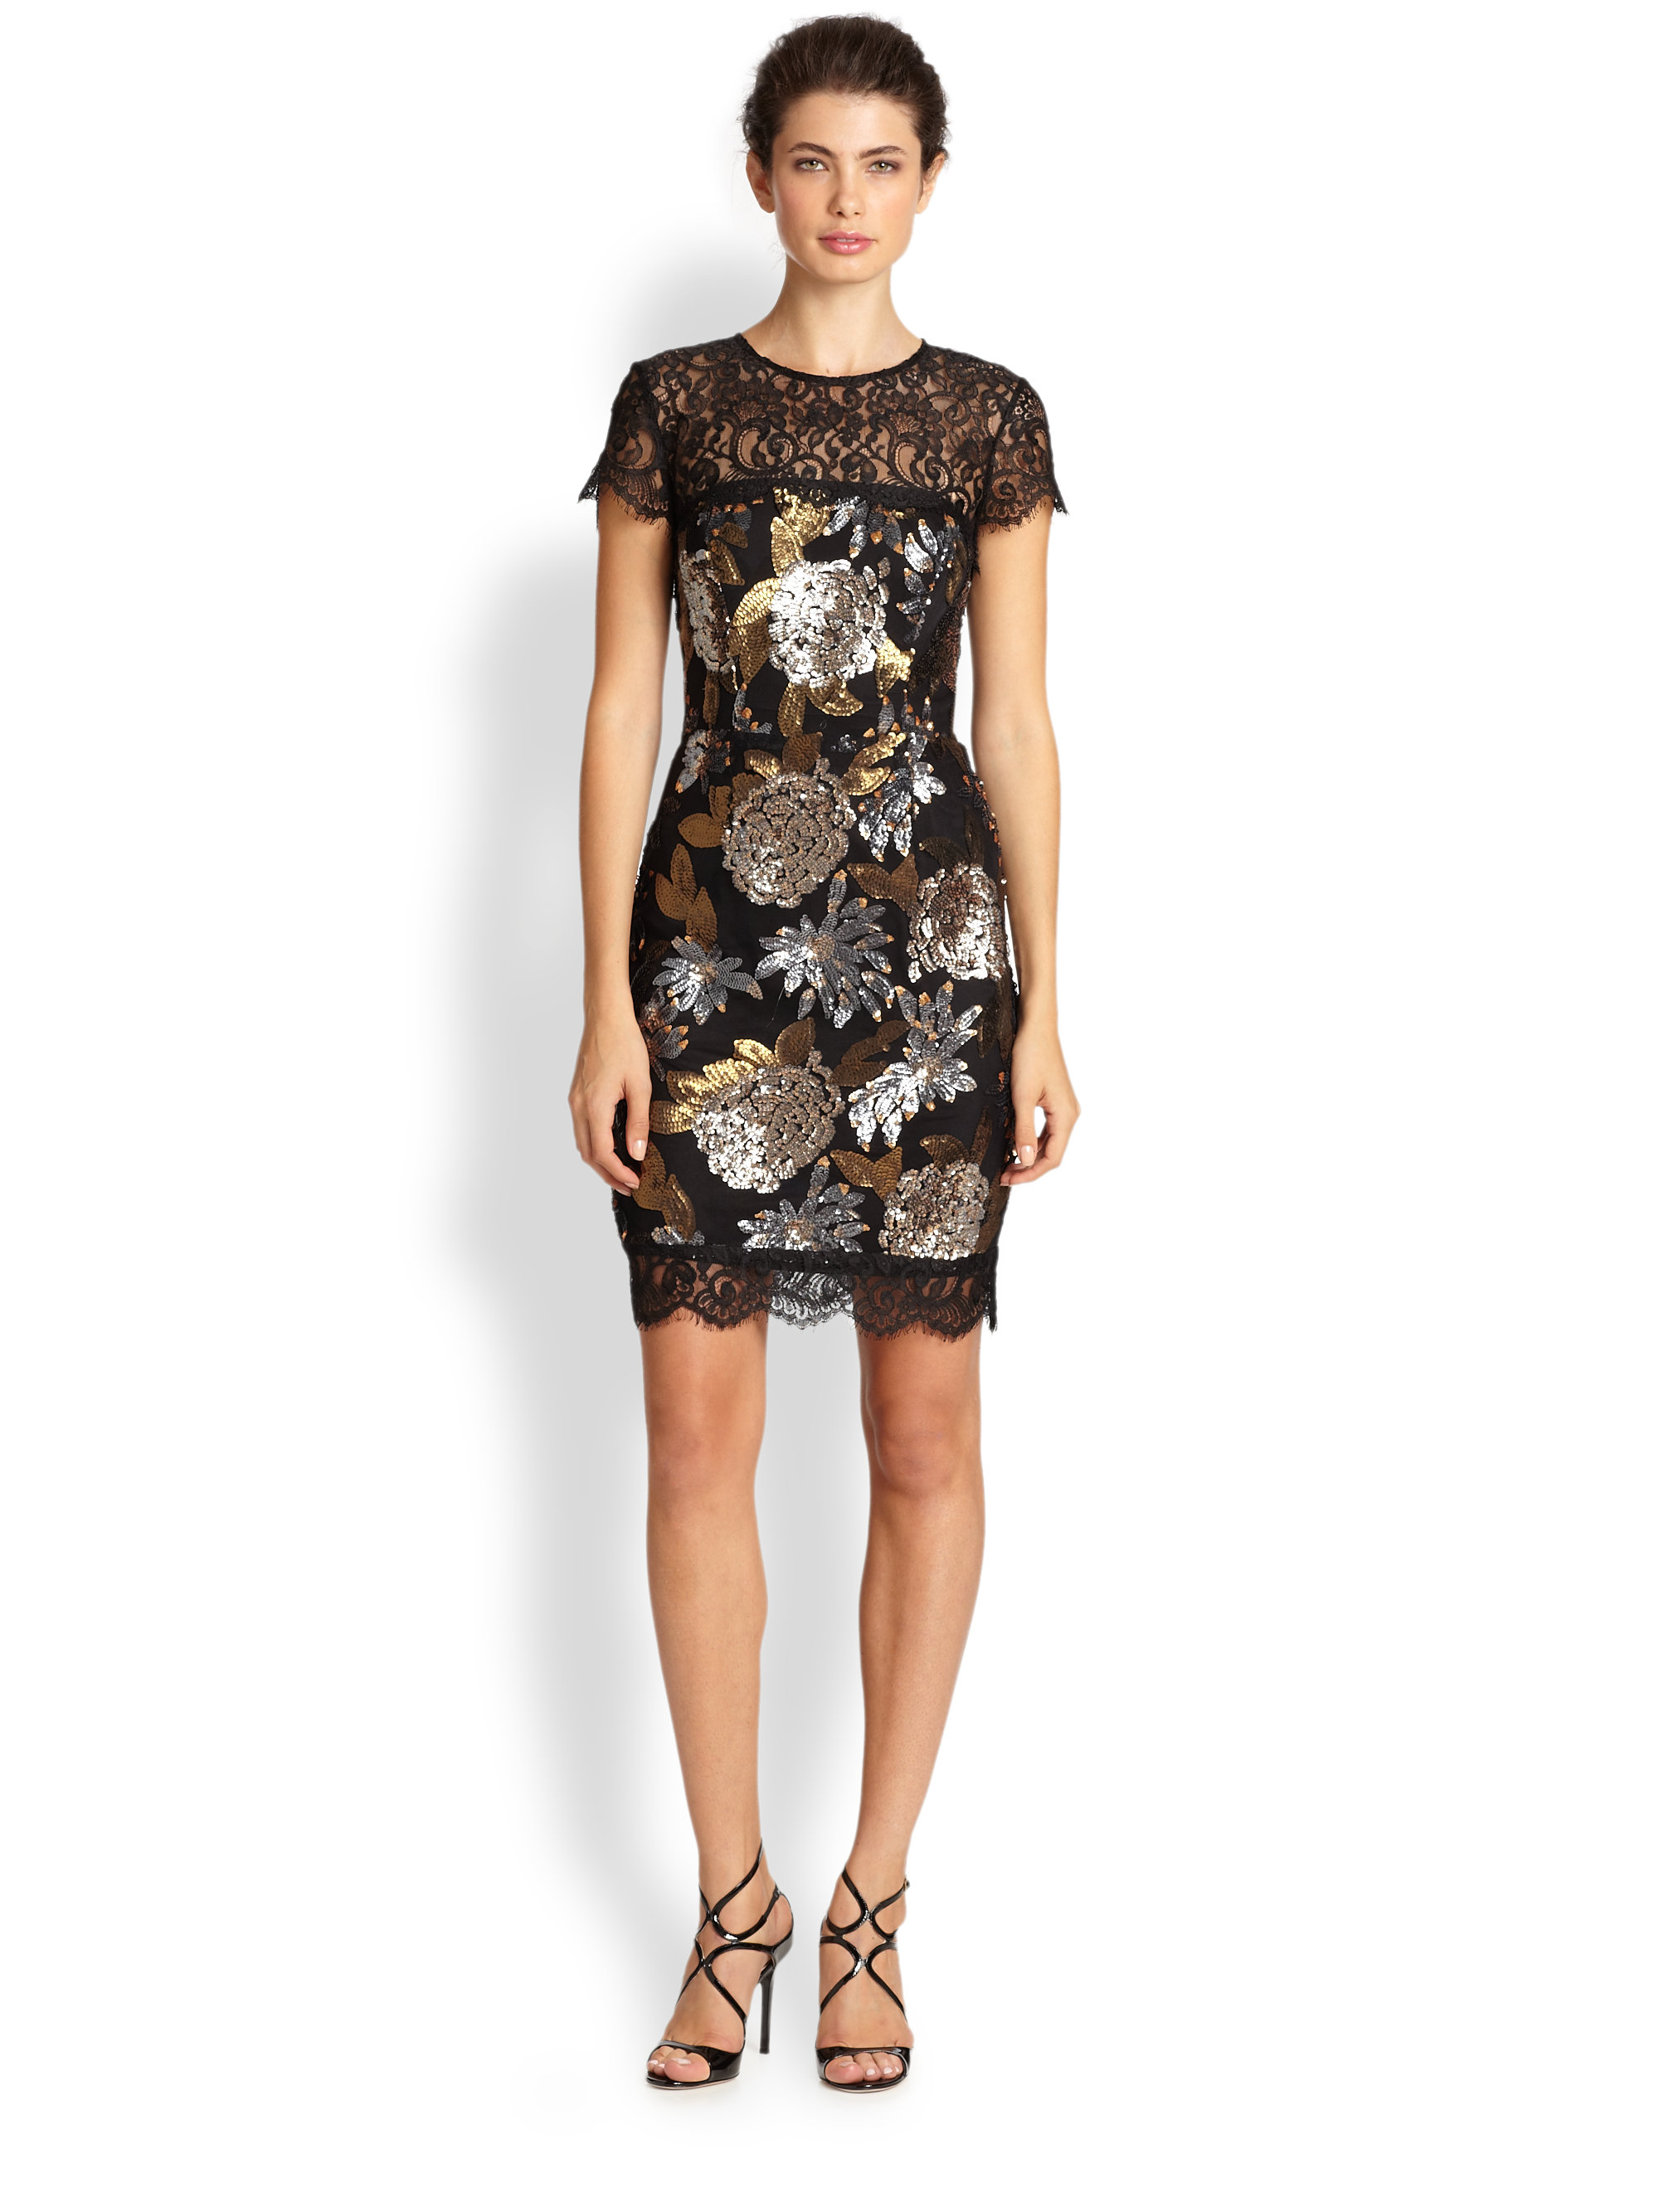 Lyst - Nicole Miller Floral sequin Cocktail Dress in Black